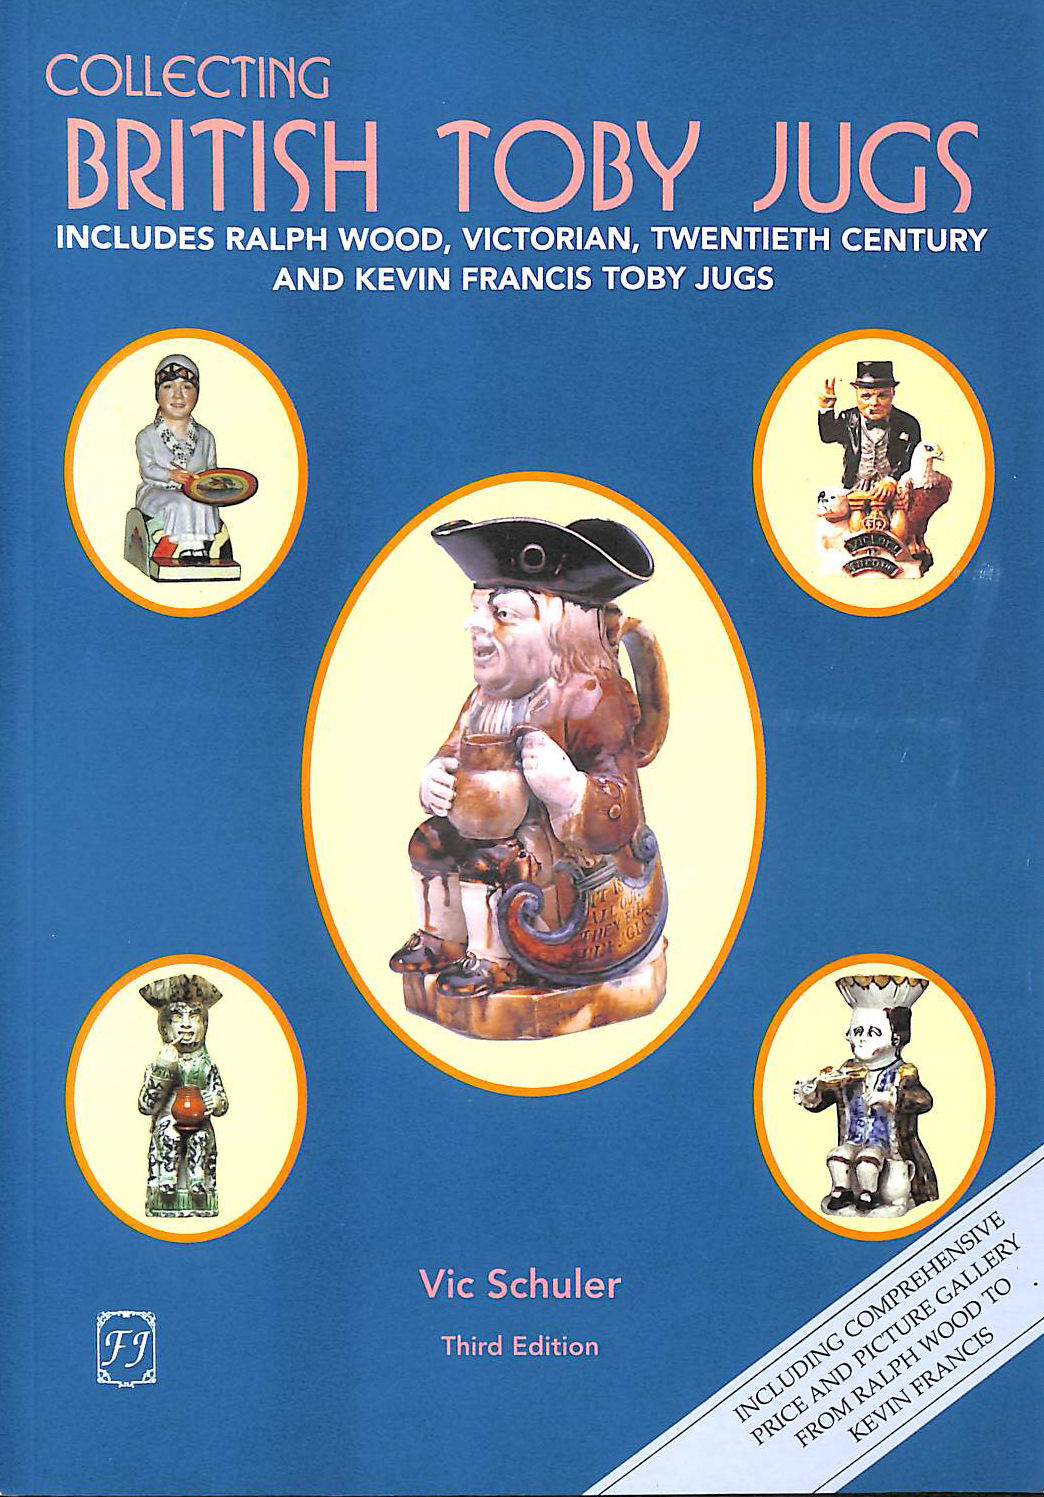 Image for Collecting British Toby Jugs: Includes Ralph Wood, Victorian, Twentieth Century and Kevin Francis Toby jugs